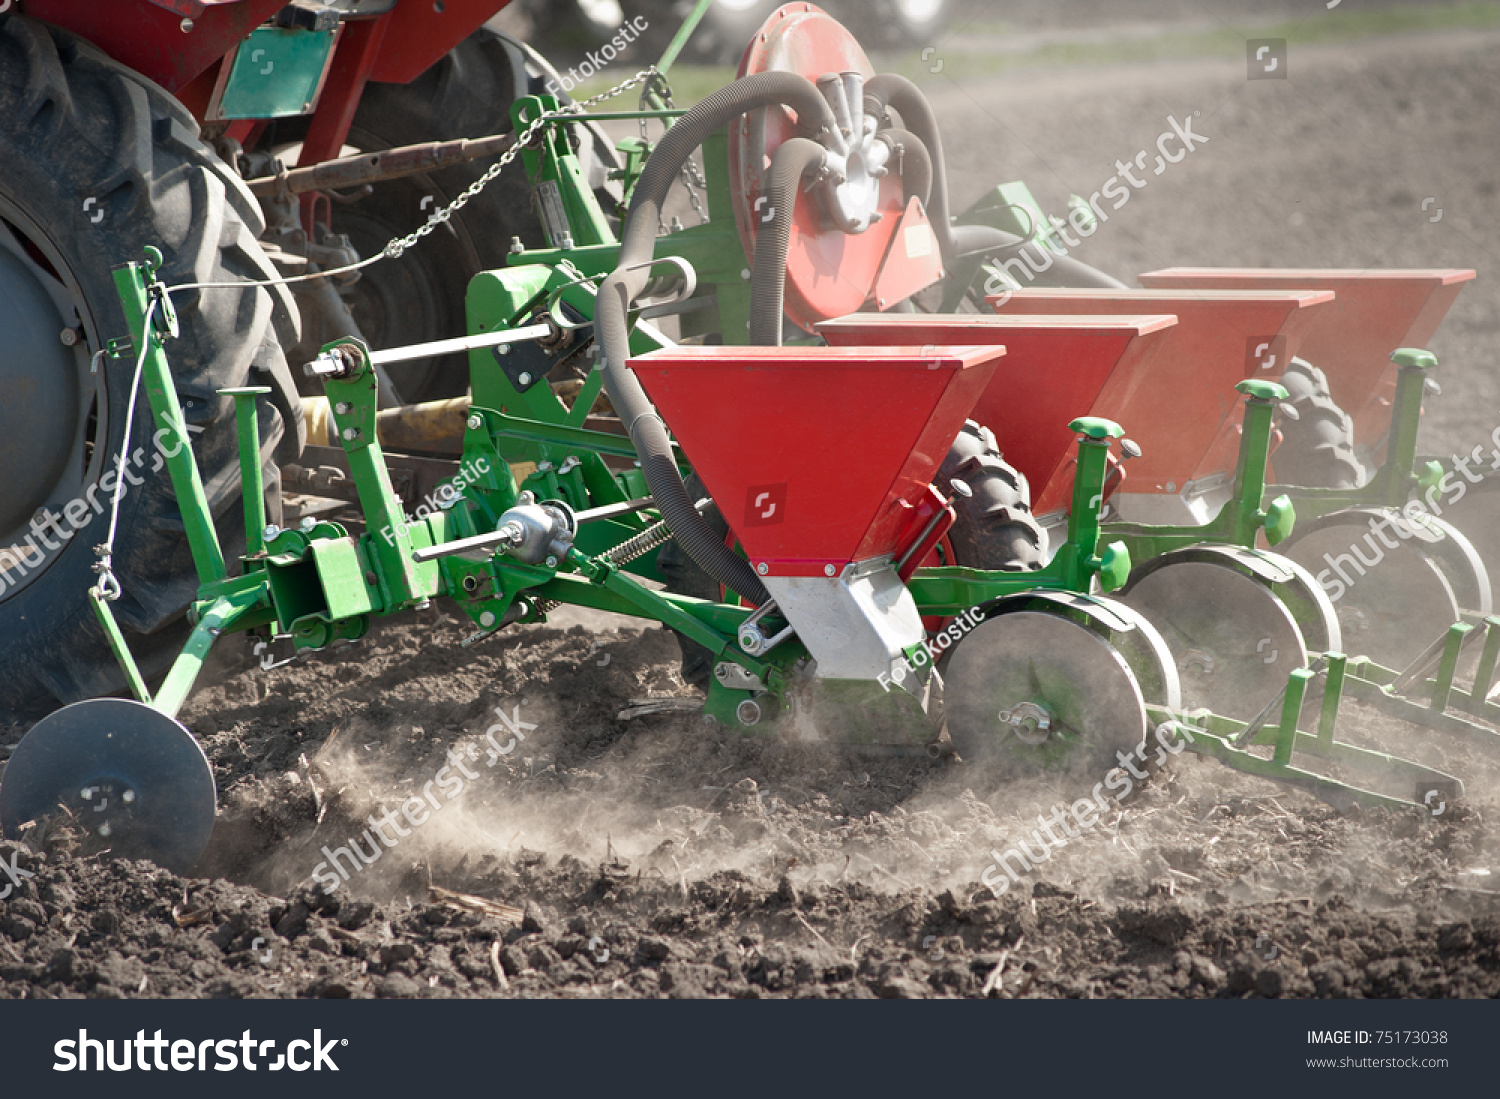 Tractor In Field Planting : Tractor seeder planting crops on field stock photo